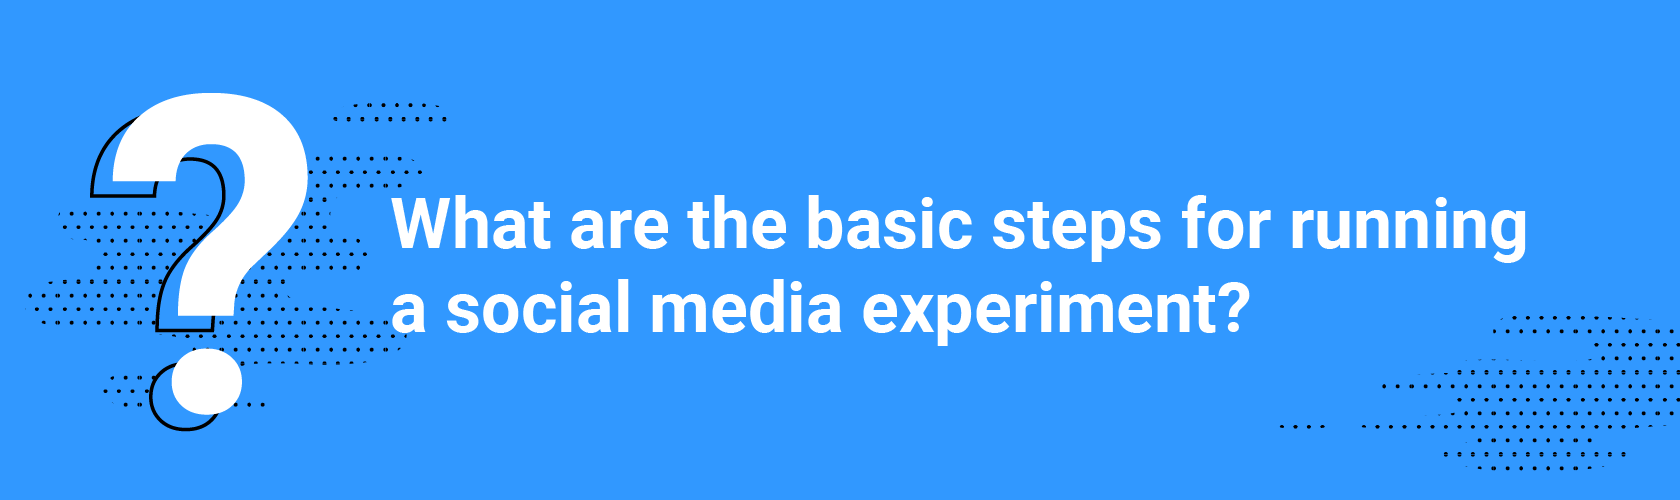 Q4. What are the basic steps for running a social media experiment?